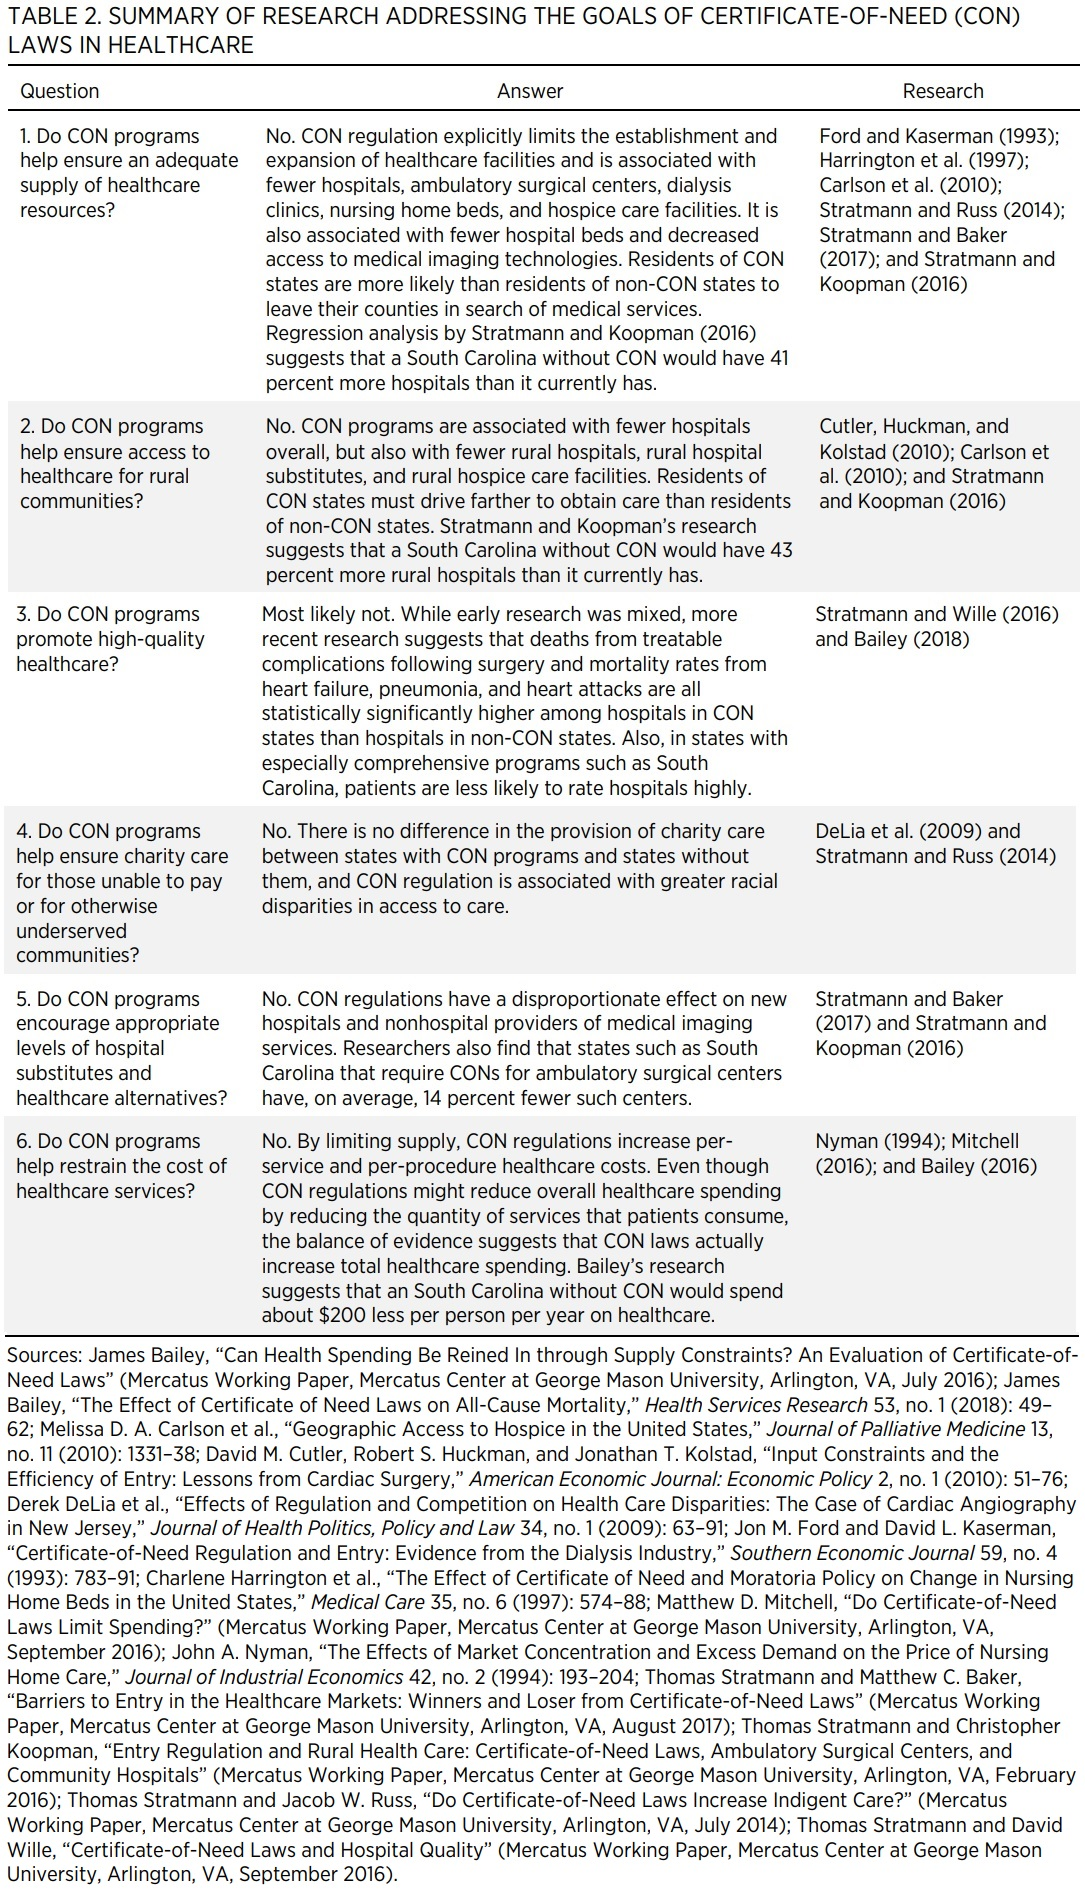 TABLE 2. SUMMARY OF RESEARCH ADDRESSING THE GOALS OF CERTIFICATE-OF-NEED (CON) LAWS IN HEALTHCARE  Question  Answer  Research  1. Do CON programs help ensure an adequate supply of healthcare resources?  No. CON regulation explicitly limits the establishme